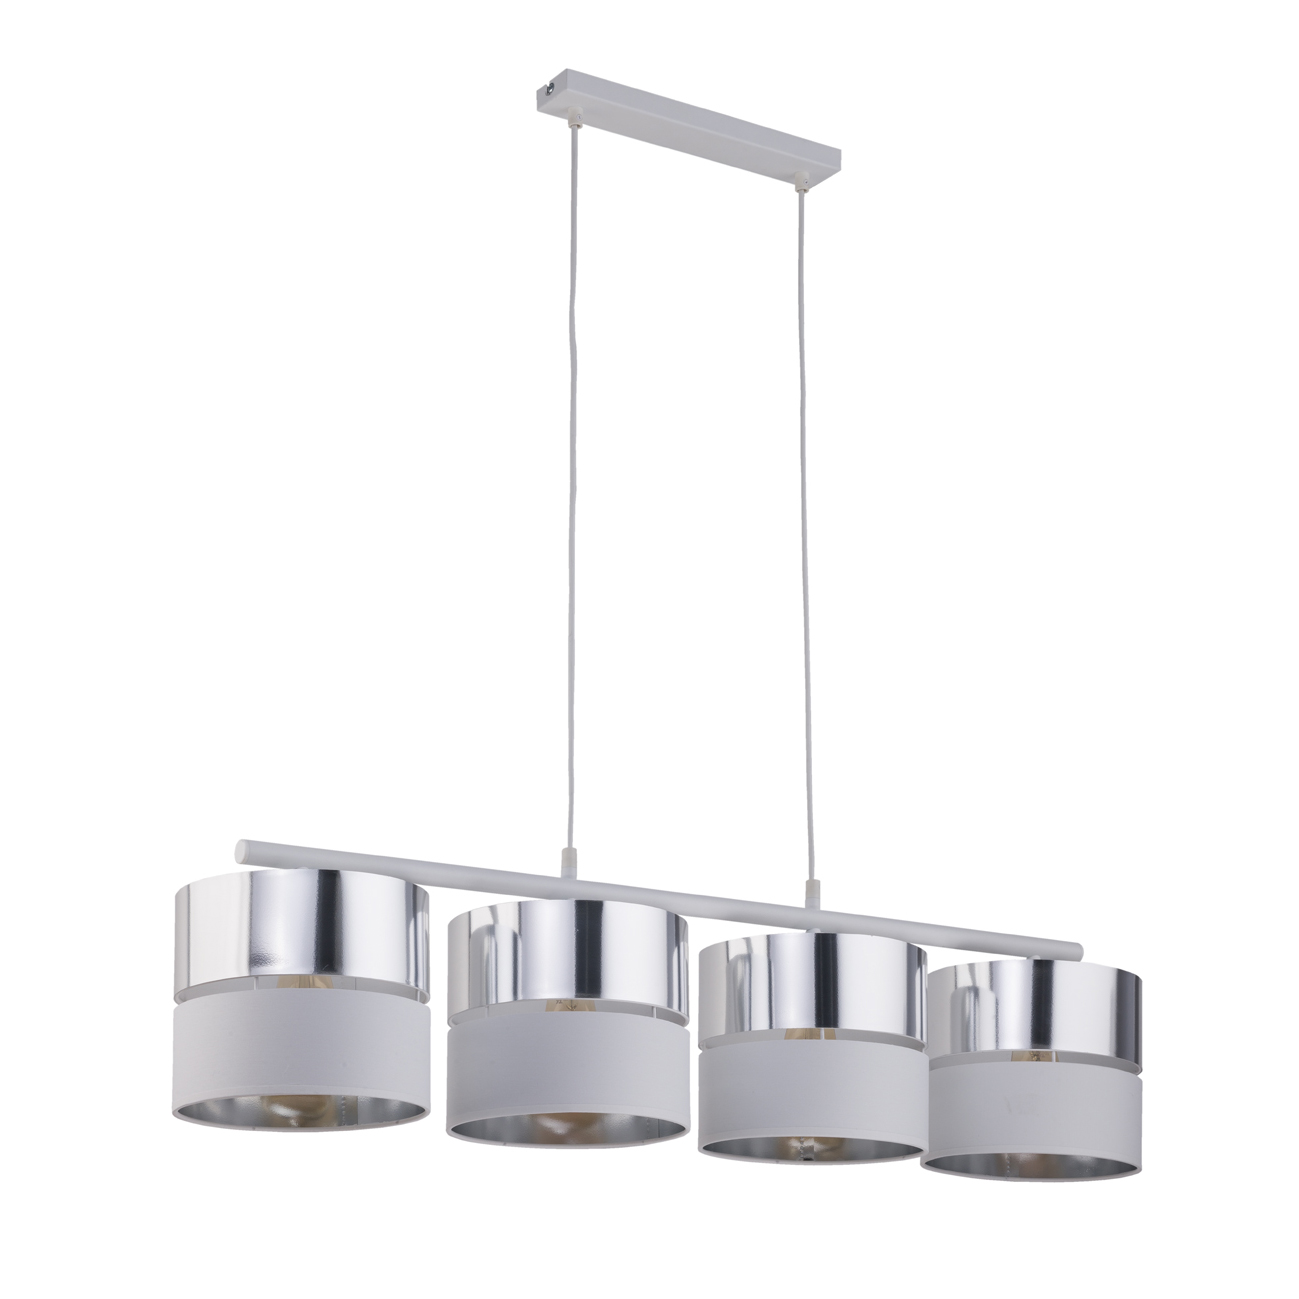 Светильник TK Lighting 4177 Hilton Silver